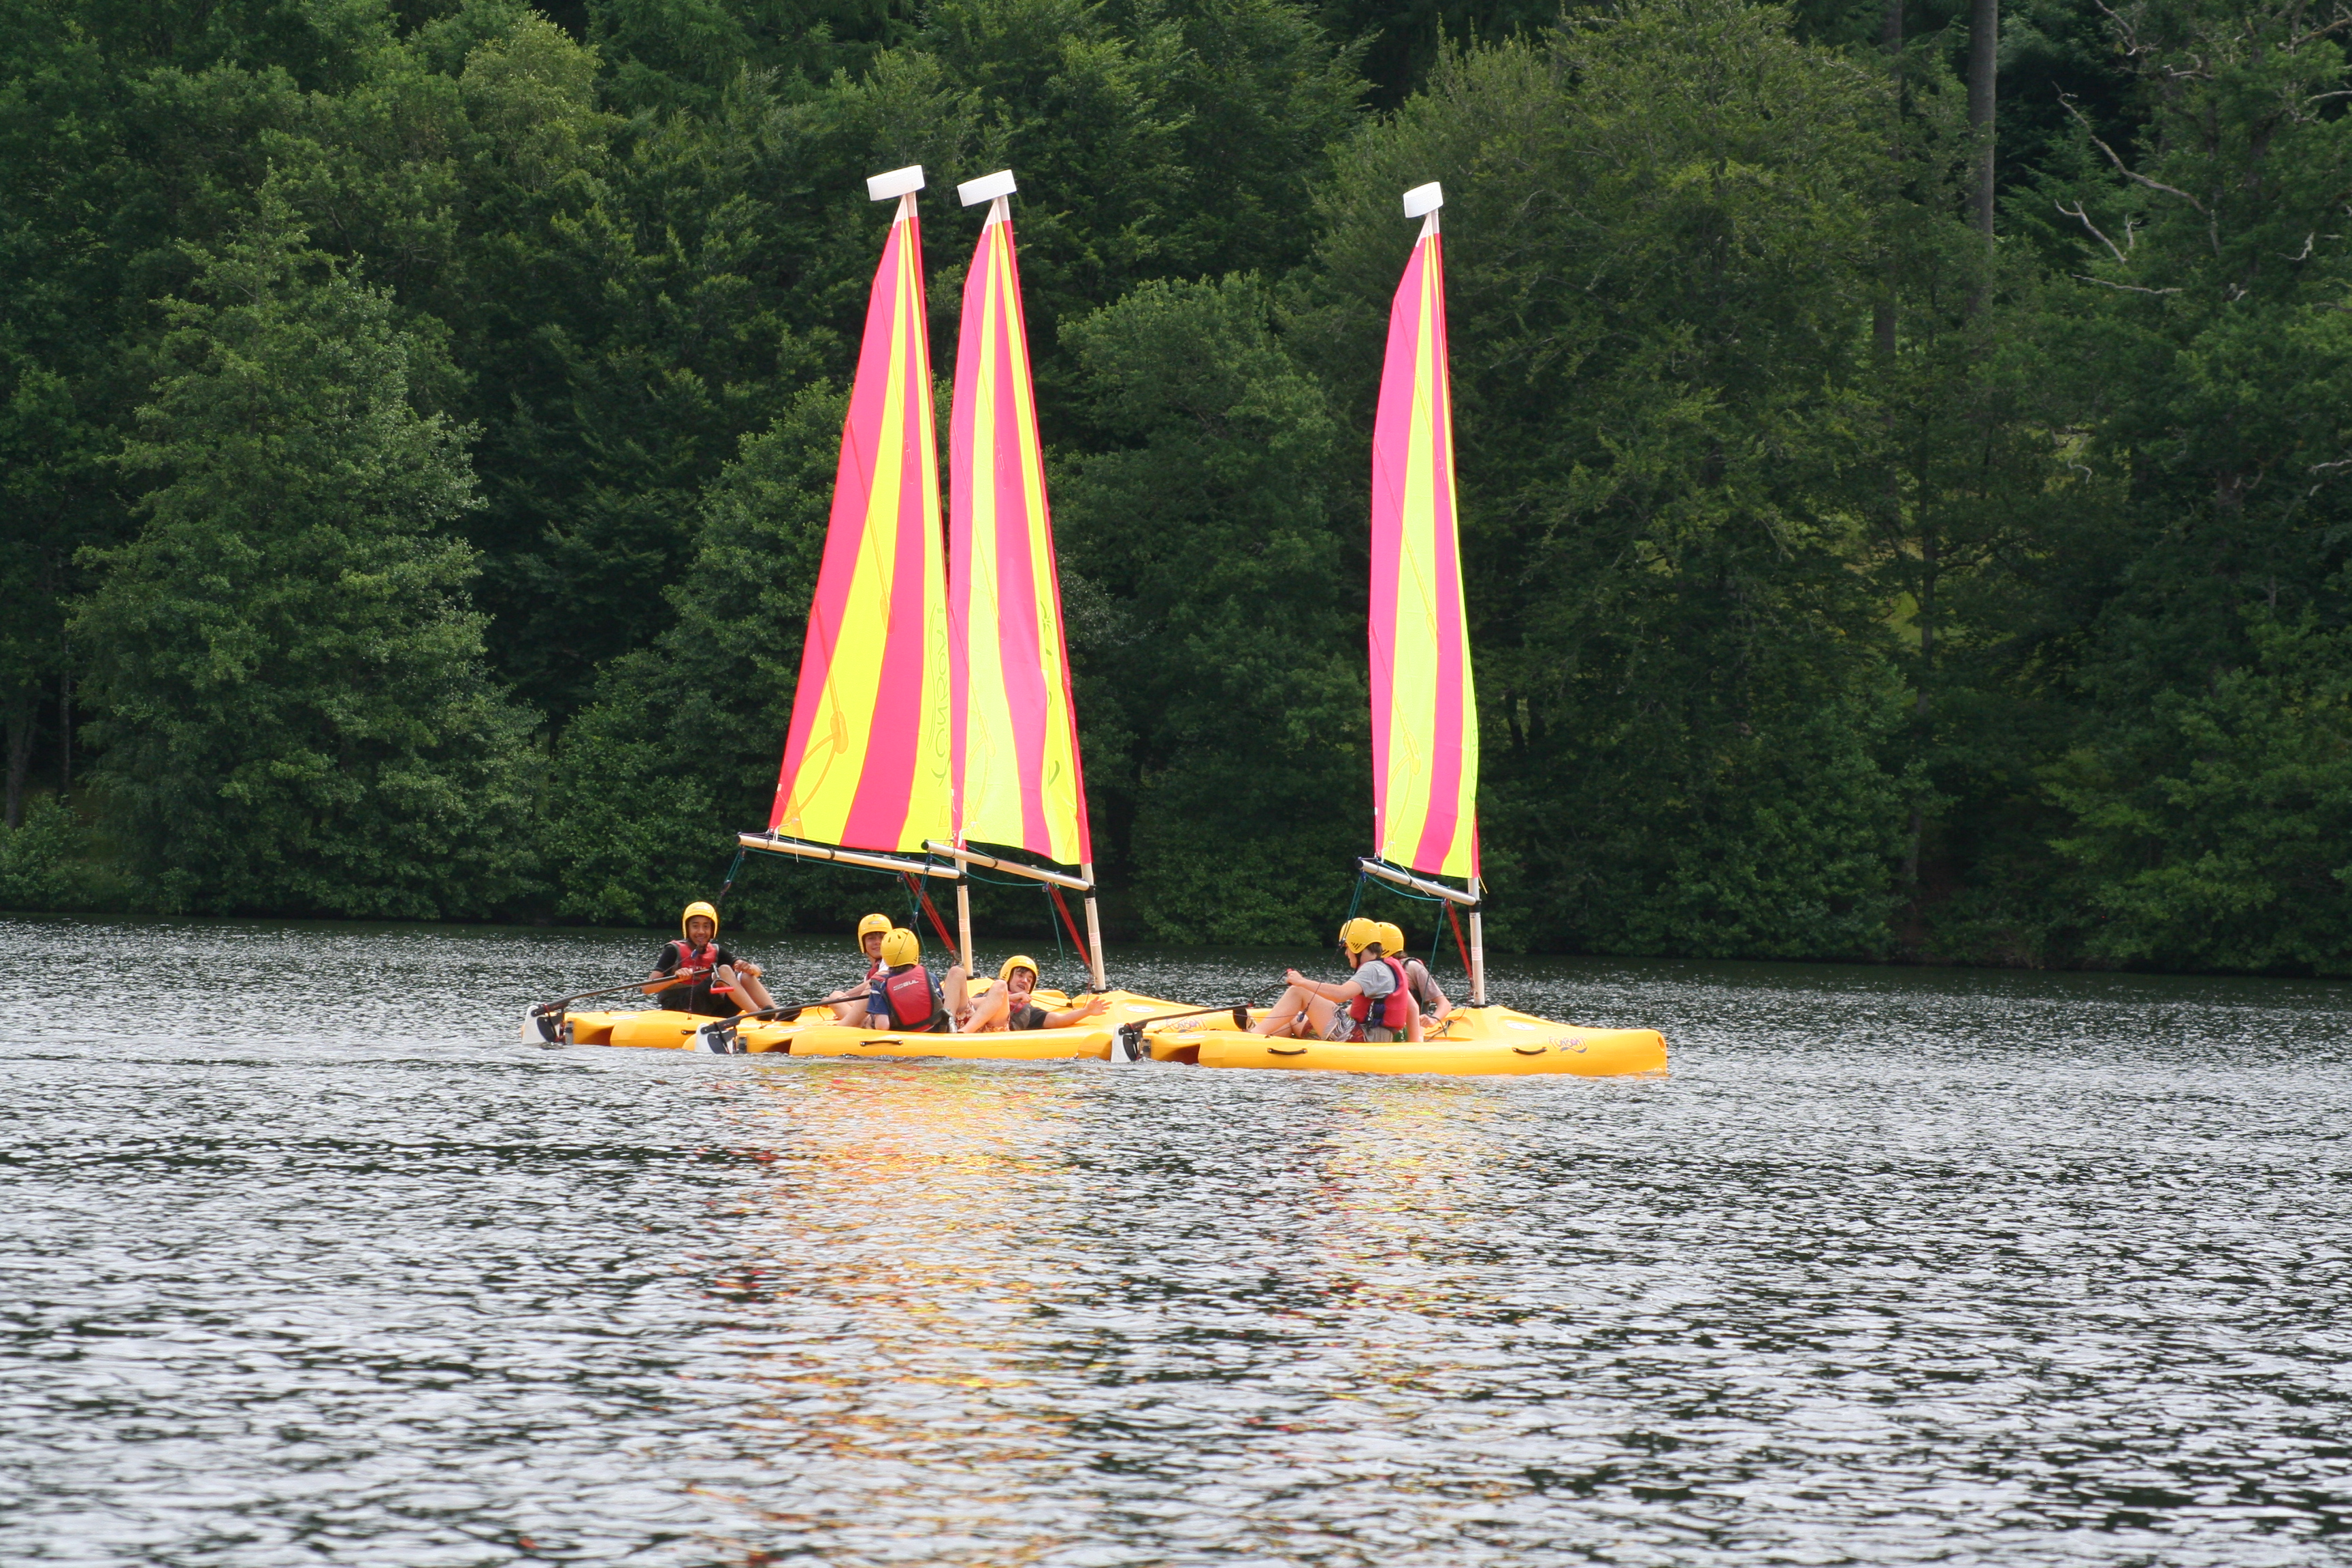 Sailing Funboats Lake Children Groups